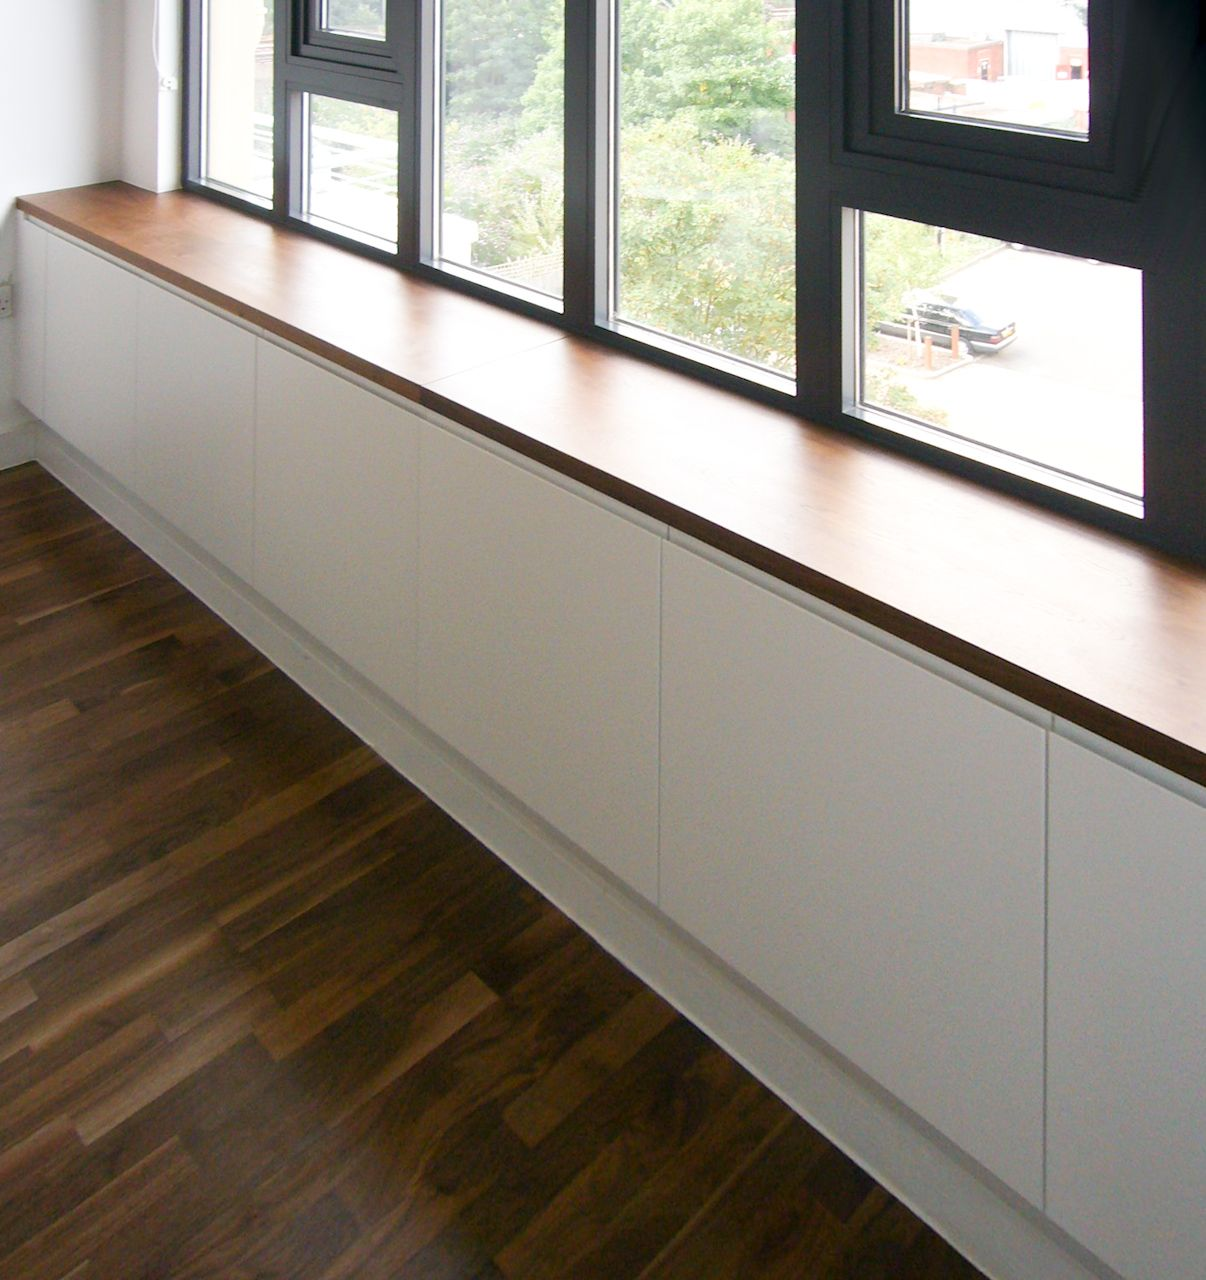 Under window storage/seating   Booth seating in kitchen, Built in ...